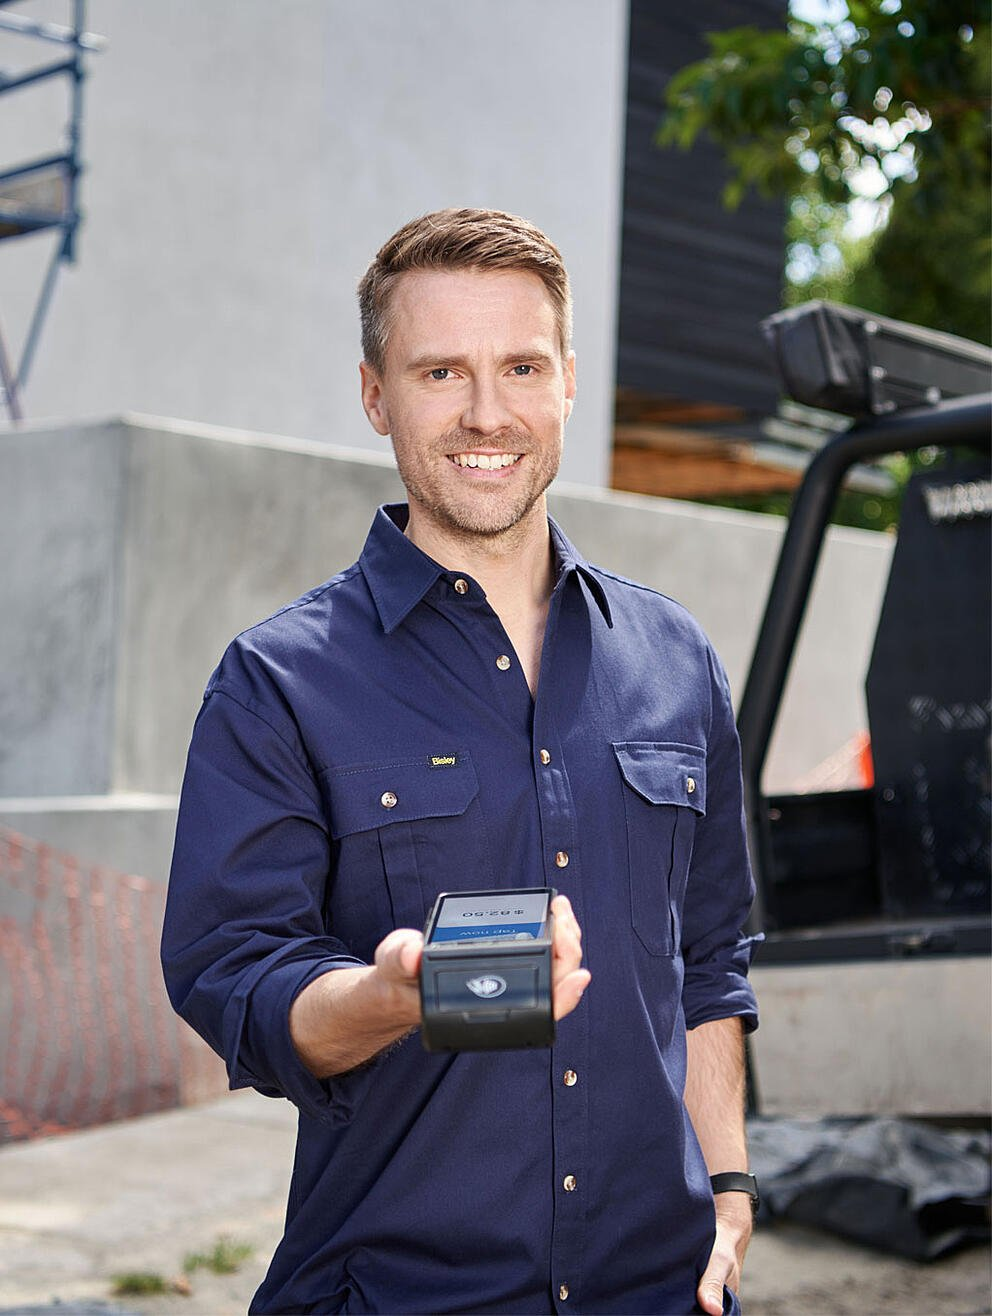 tradie-with-eftpos-payment-terminal